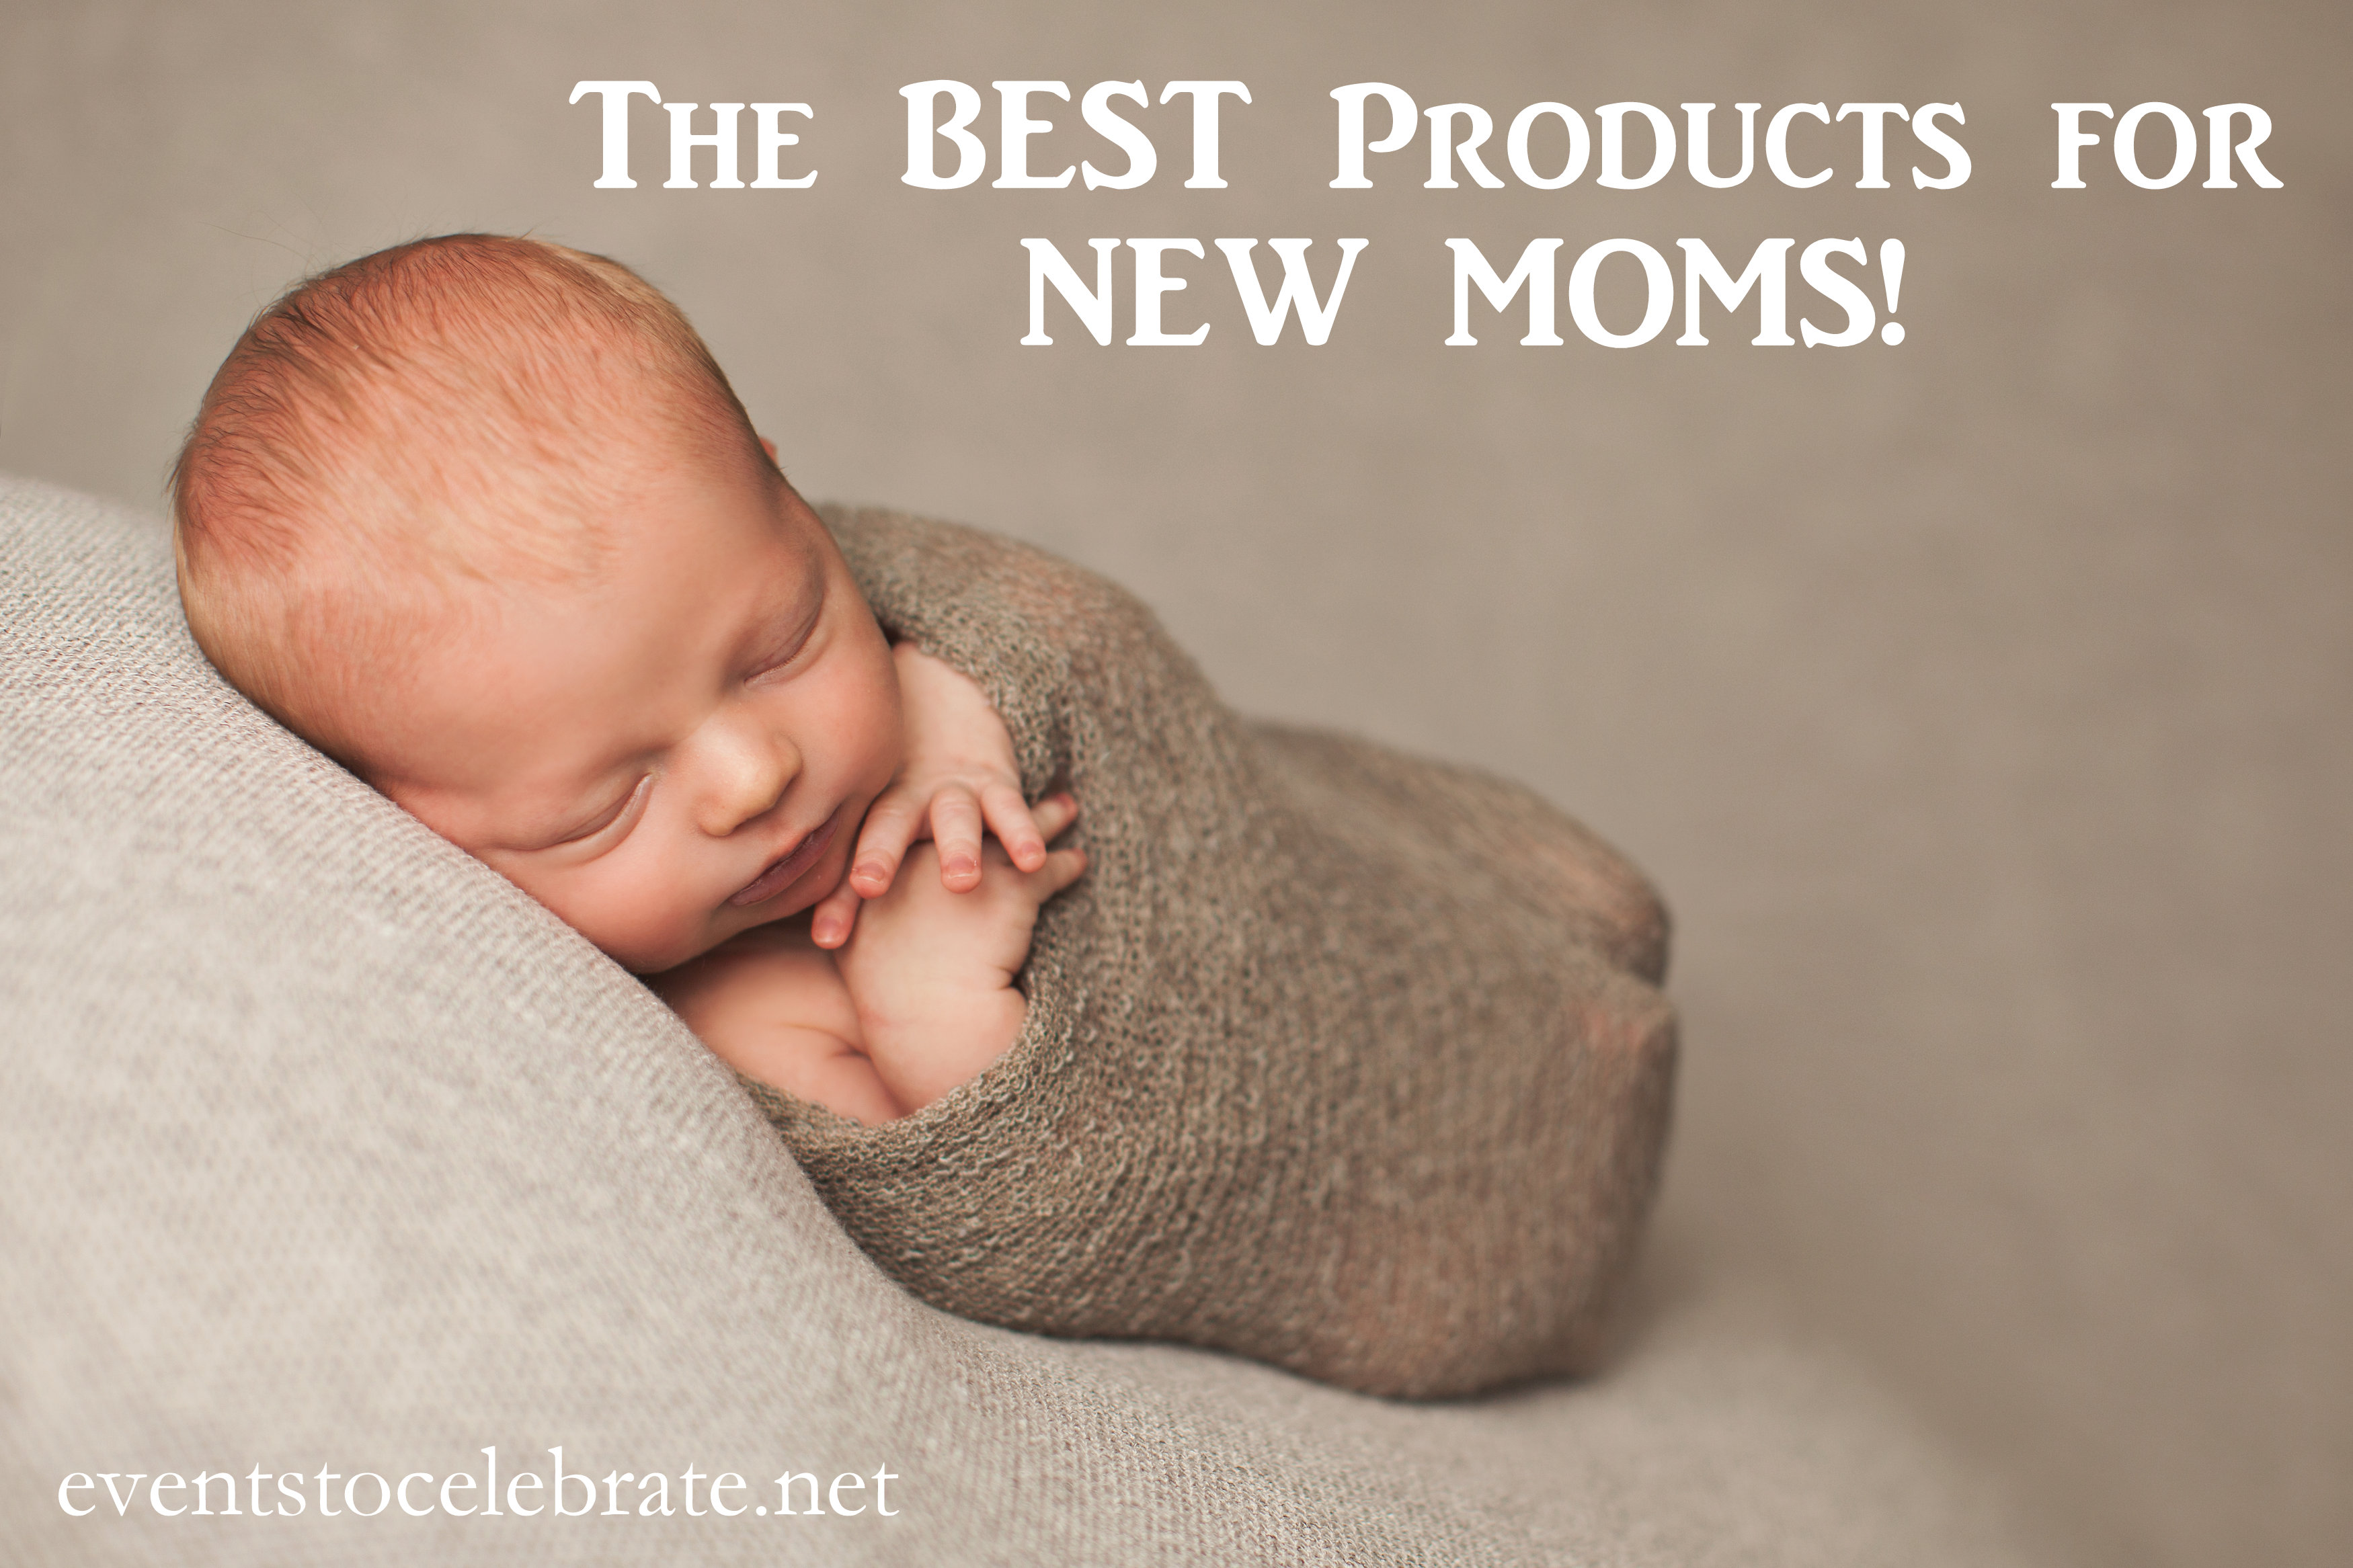 Best Products for a New Mom - eventstocelebrate.net